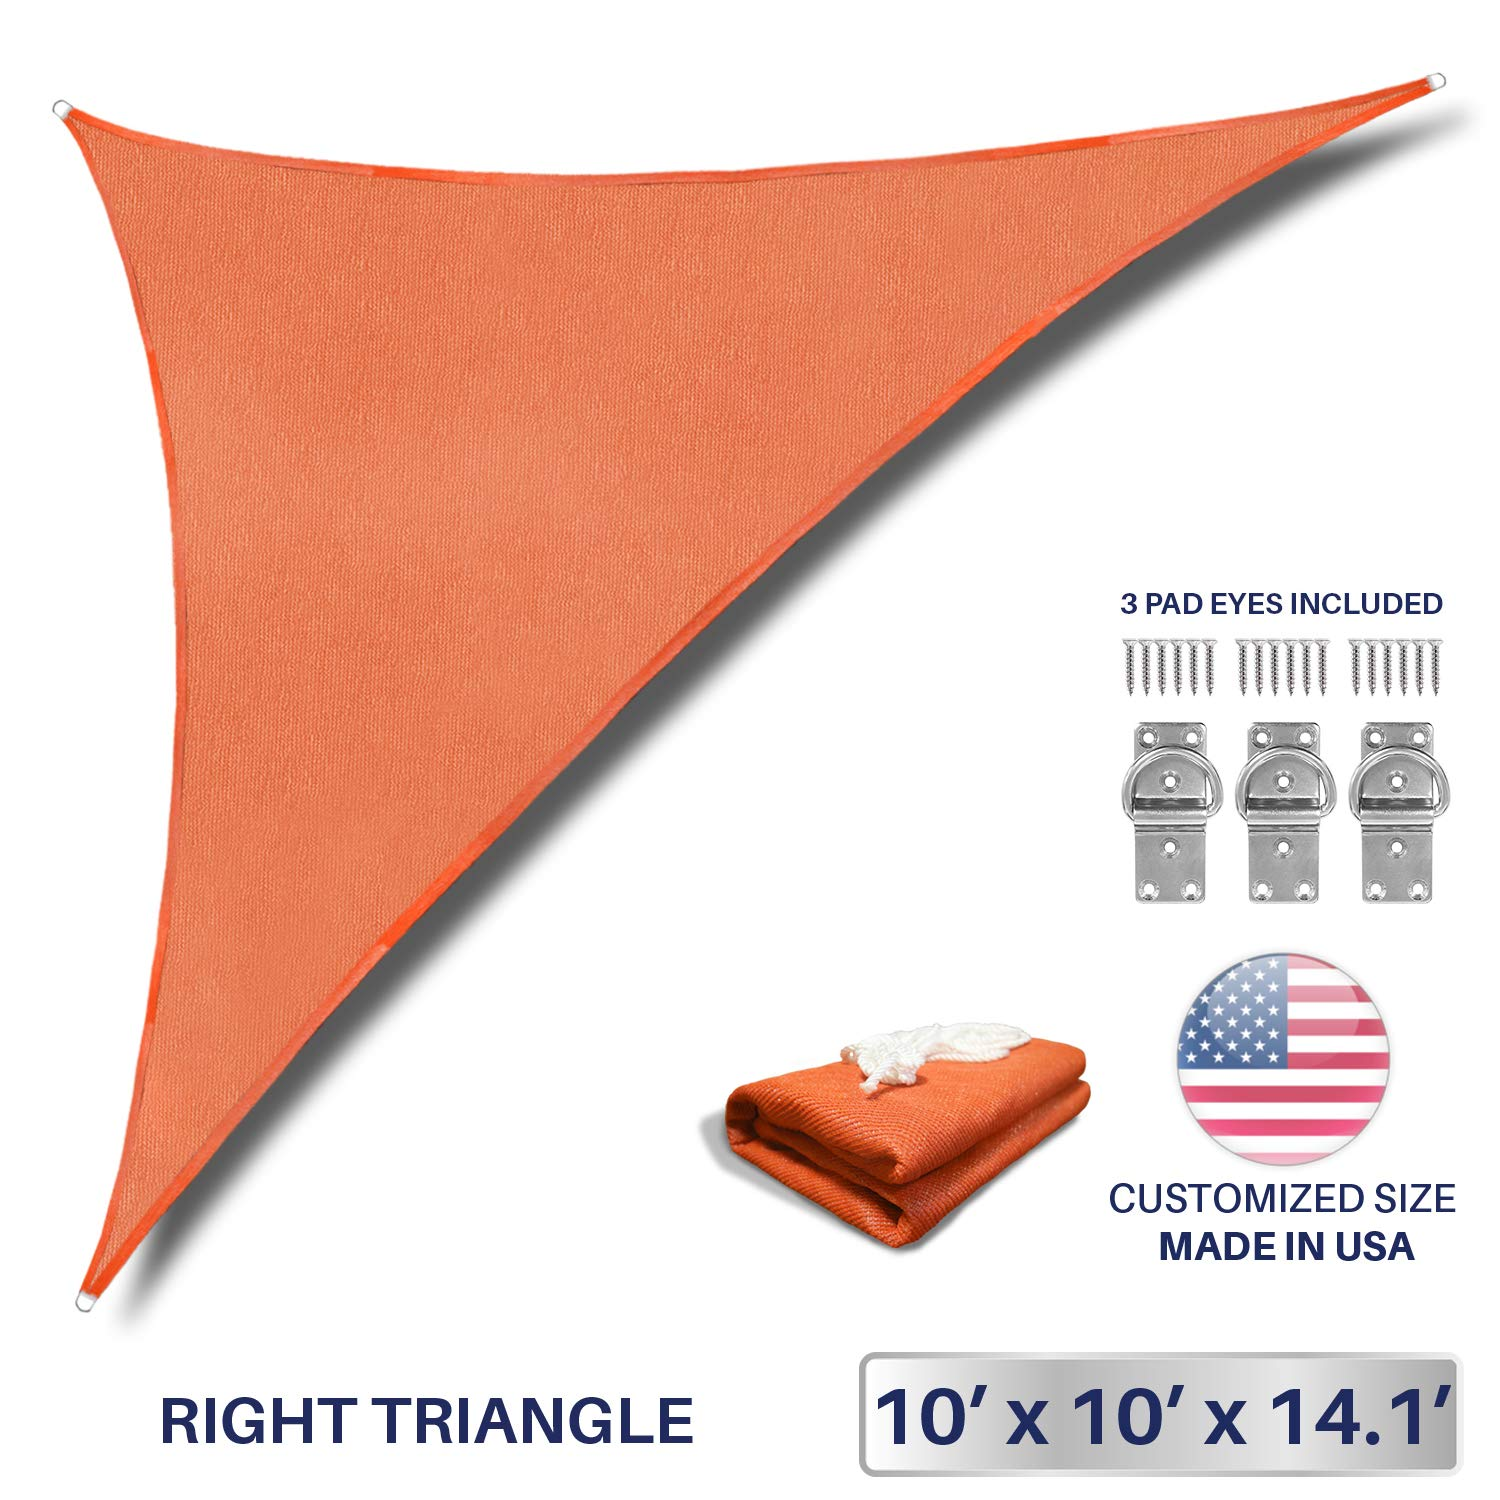 Windscreen4less 10' x 10' x 14.1' Triangle Sun Shade Sail - Solid Orange Durable UV Shelter Canopy for Patio Outdoor Backyard Included Free Pad Eyes - Custom Size (3 Year Warranty)